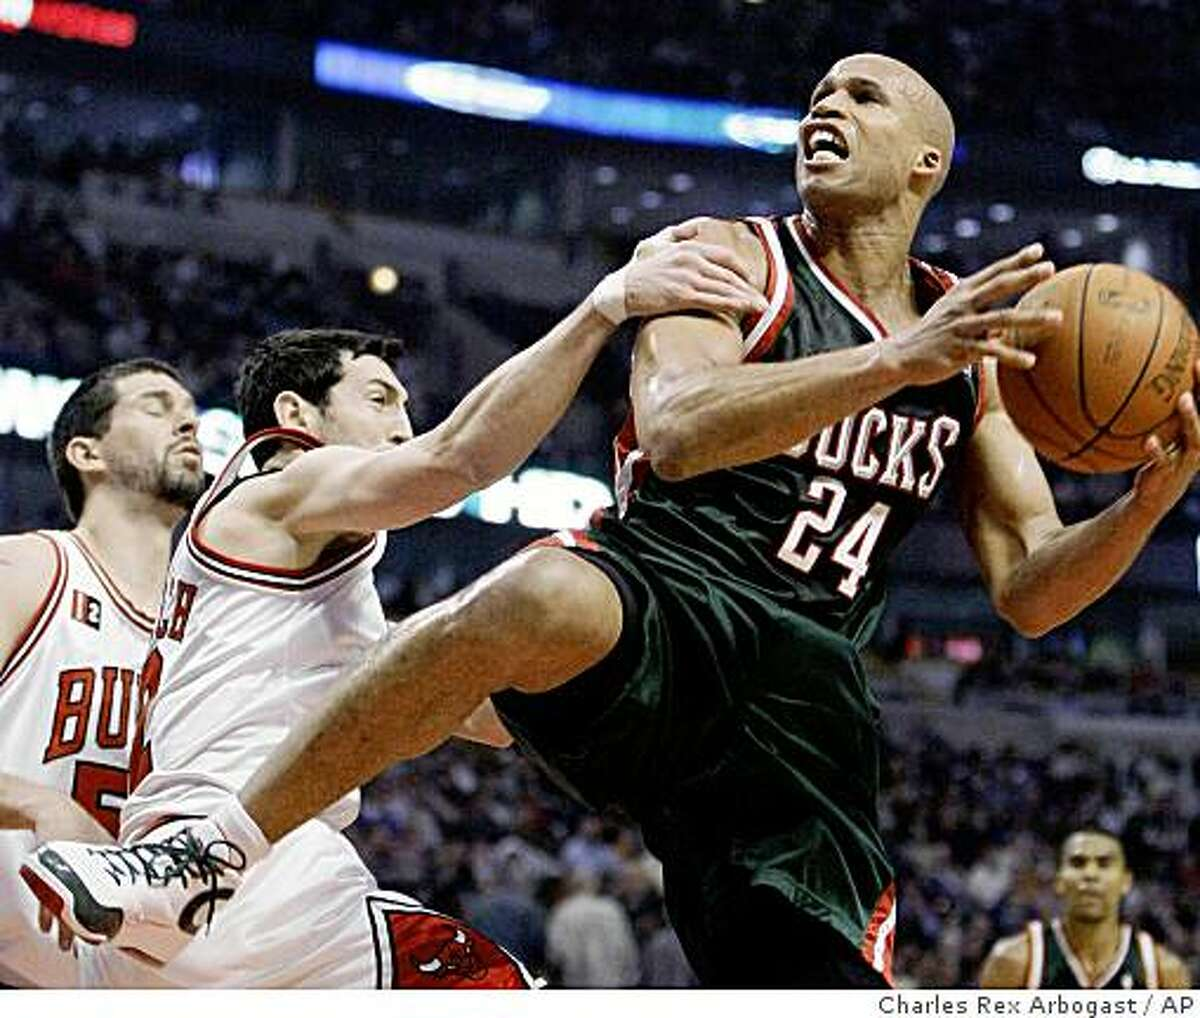 Chicago Bulls guard Kirk Hinrich, left, fouls Milwaukee Bucks forward Richard Jefferson as Jefferson shoots during the first half of their NBA basketball game in Chicago, Friday, March 6, 2009. Watching on the play for the Bulls is Brad Miller, left. (AP Photo/Charles Rex Arbogast)